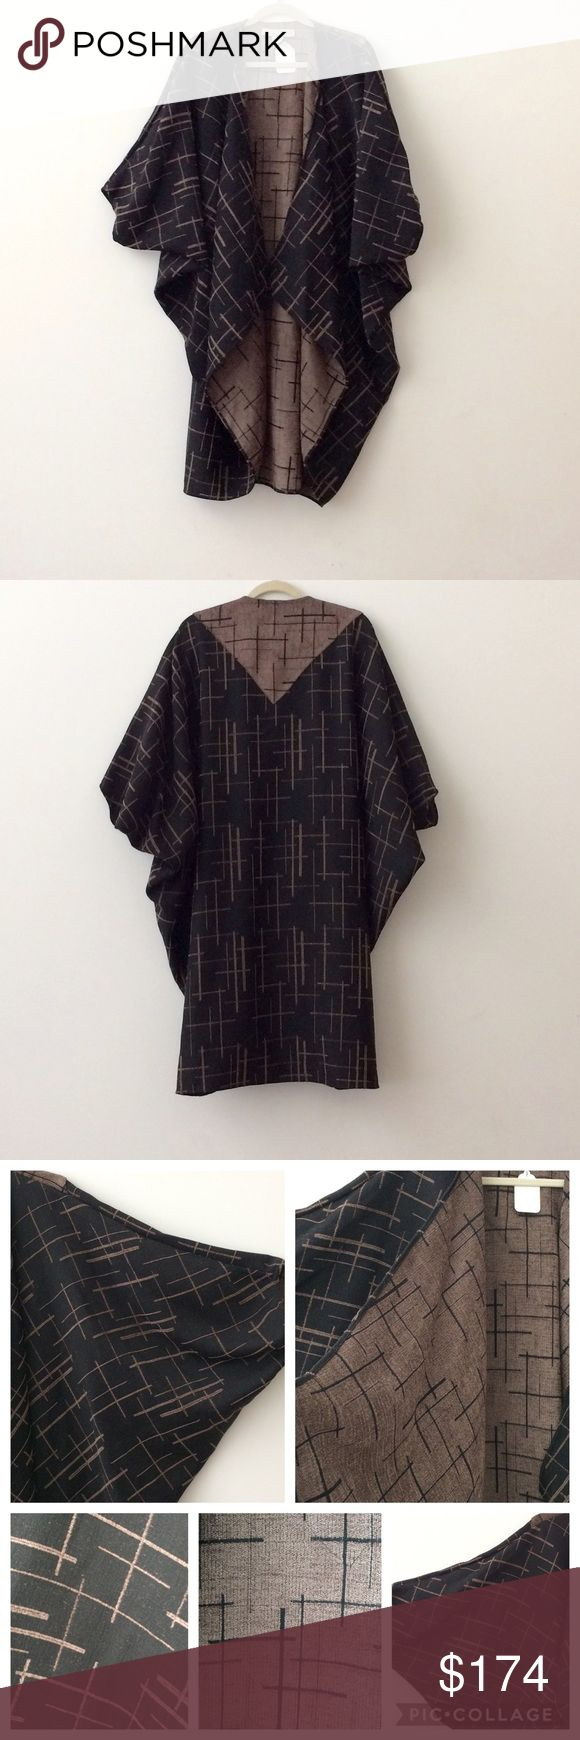 """🌺NEW LISTING De La Mer Cocoon Cape/Jacket 🌺 New w/tags. Never worn. Beautiful & elegant print cape from De La Mer in black/chocolate. One size. Imported Fabric (feels like a cotton blend although not sure). It measures about 42"""" from back running down center.   Great piece to add to your wardrobe!   Can share more photos.   Open to offers.   Thank you. De La Mer 1981 Jackets & Coats Capes"""